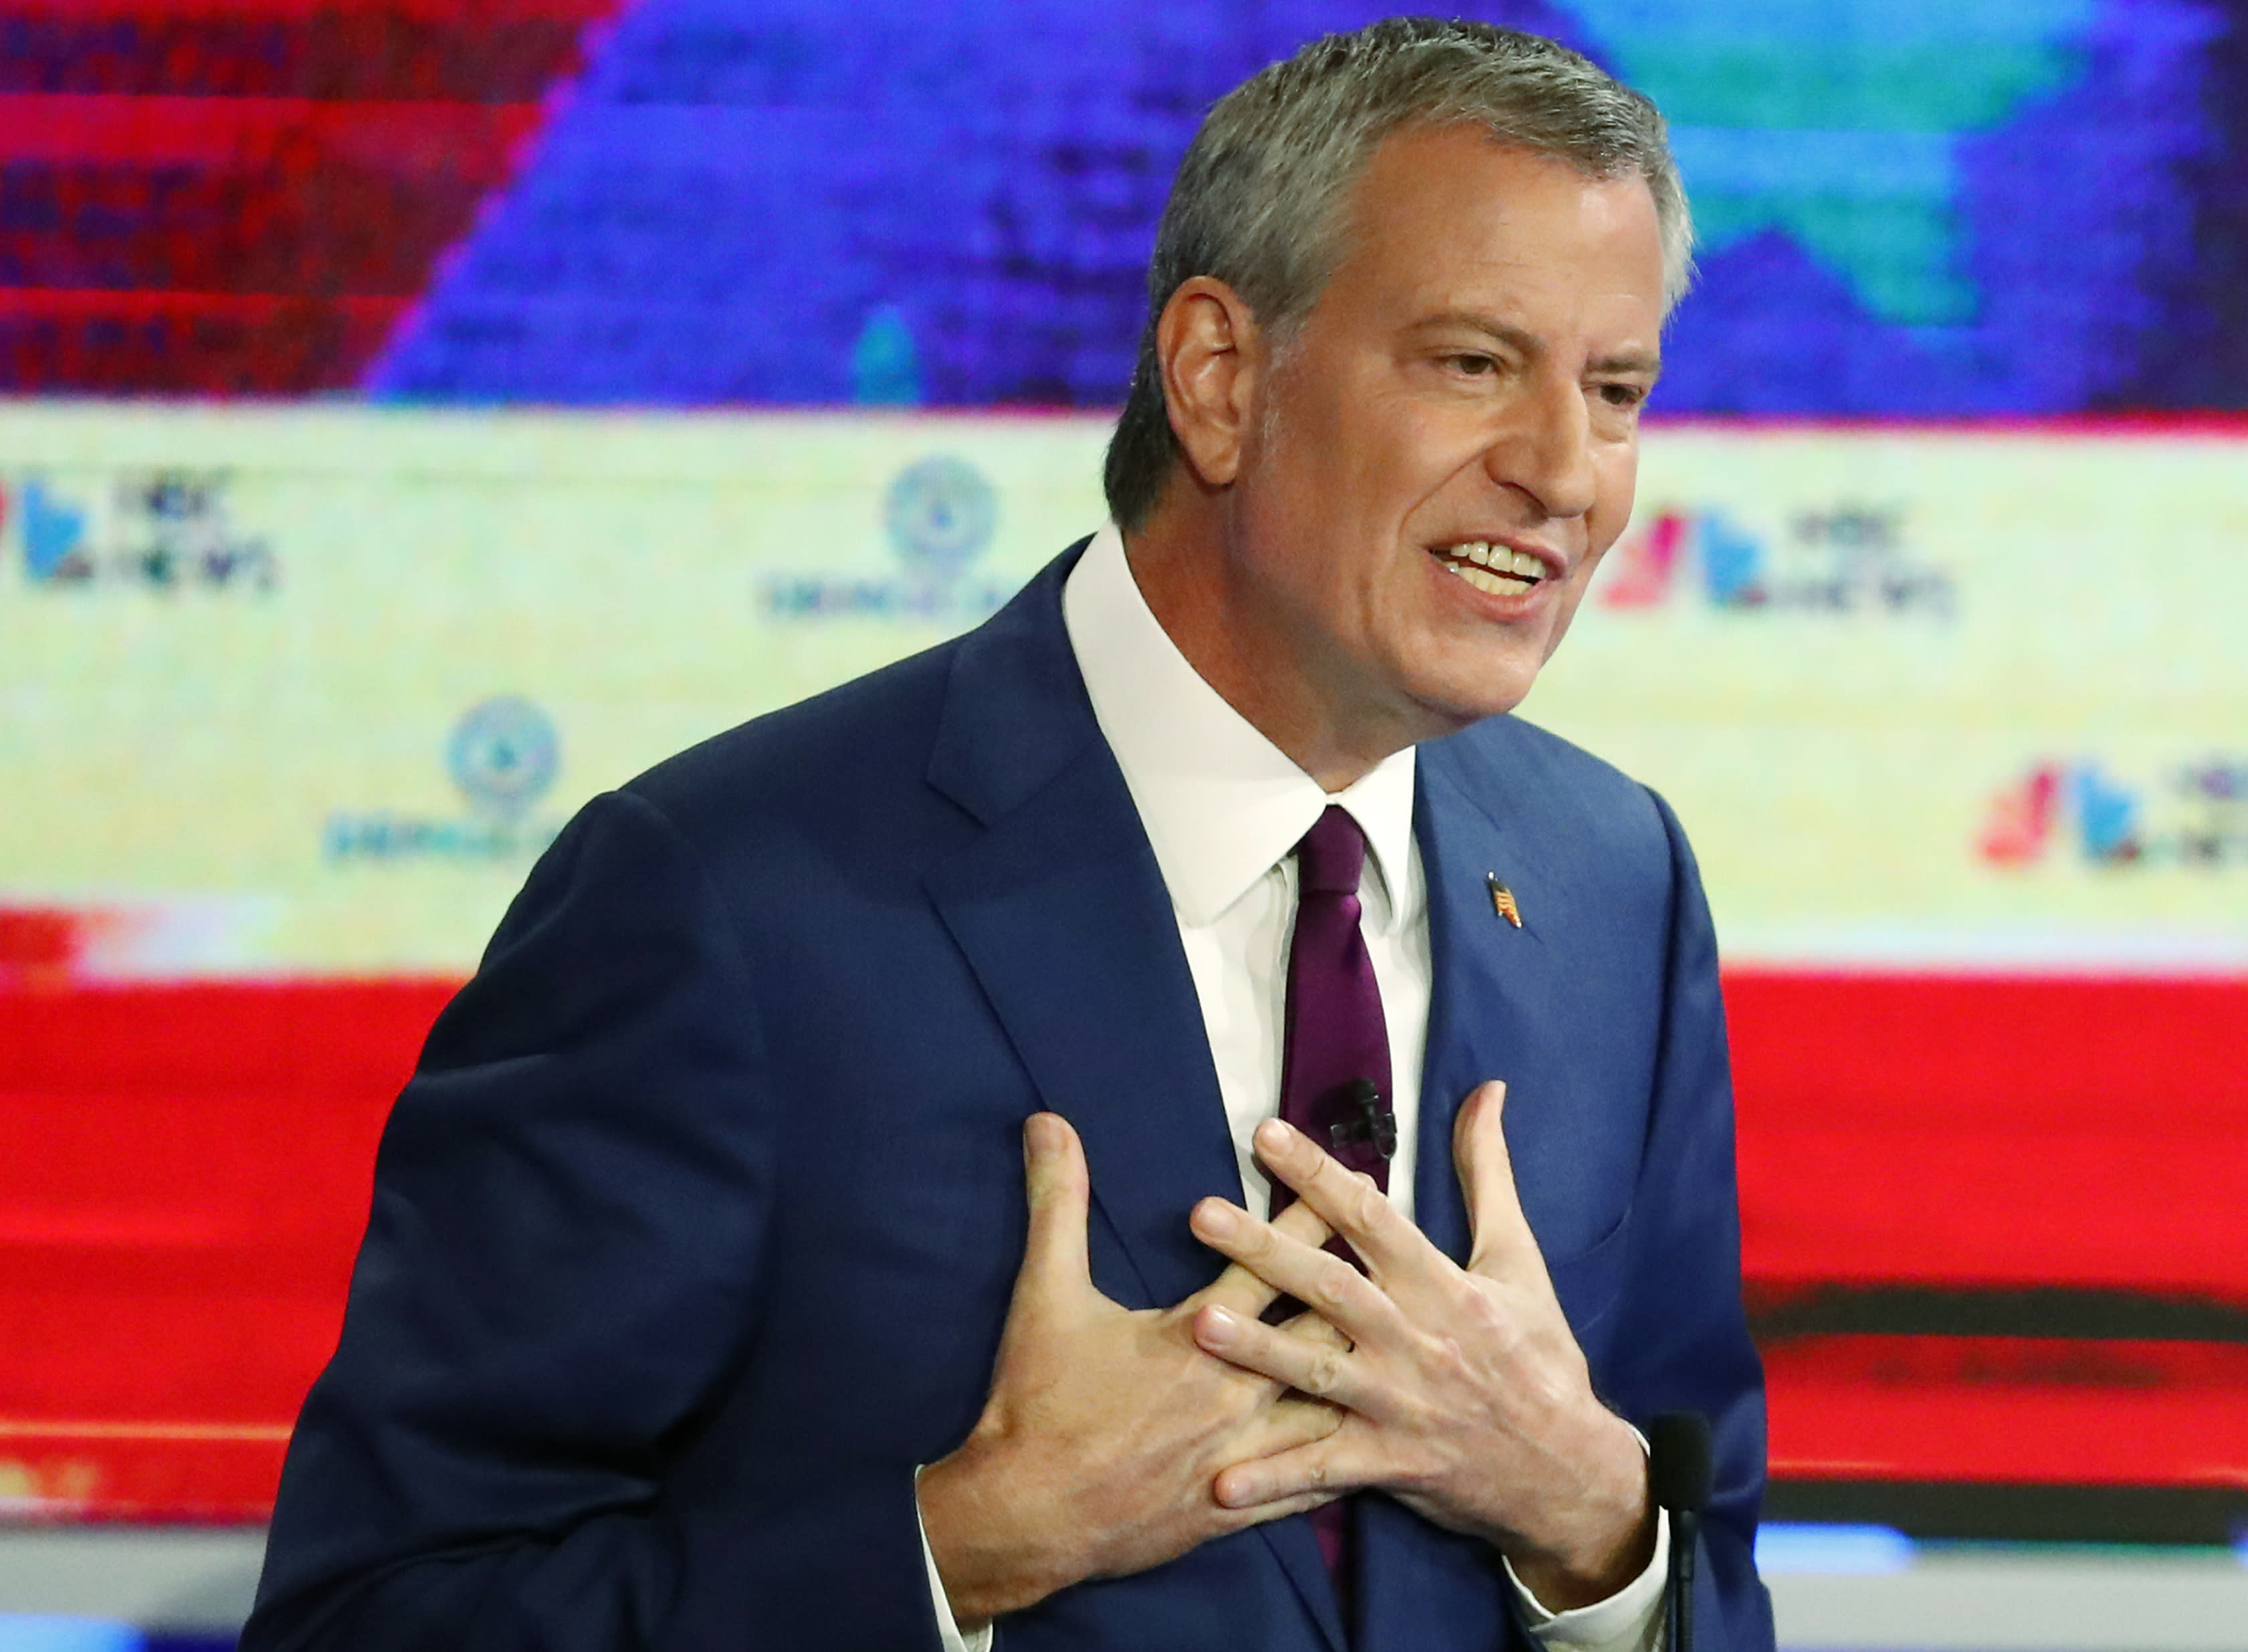 De Blasio shouts Cuba's Communist slogan at rally in Miami